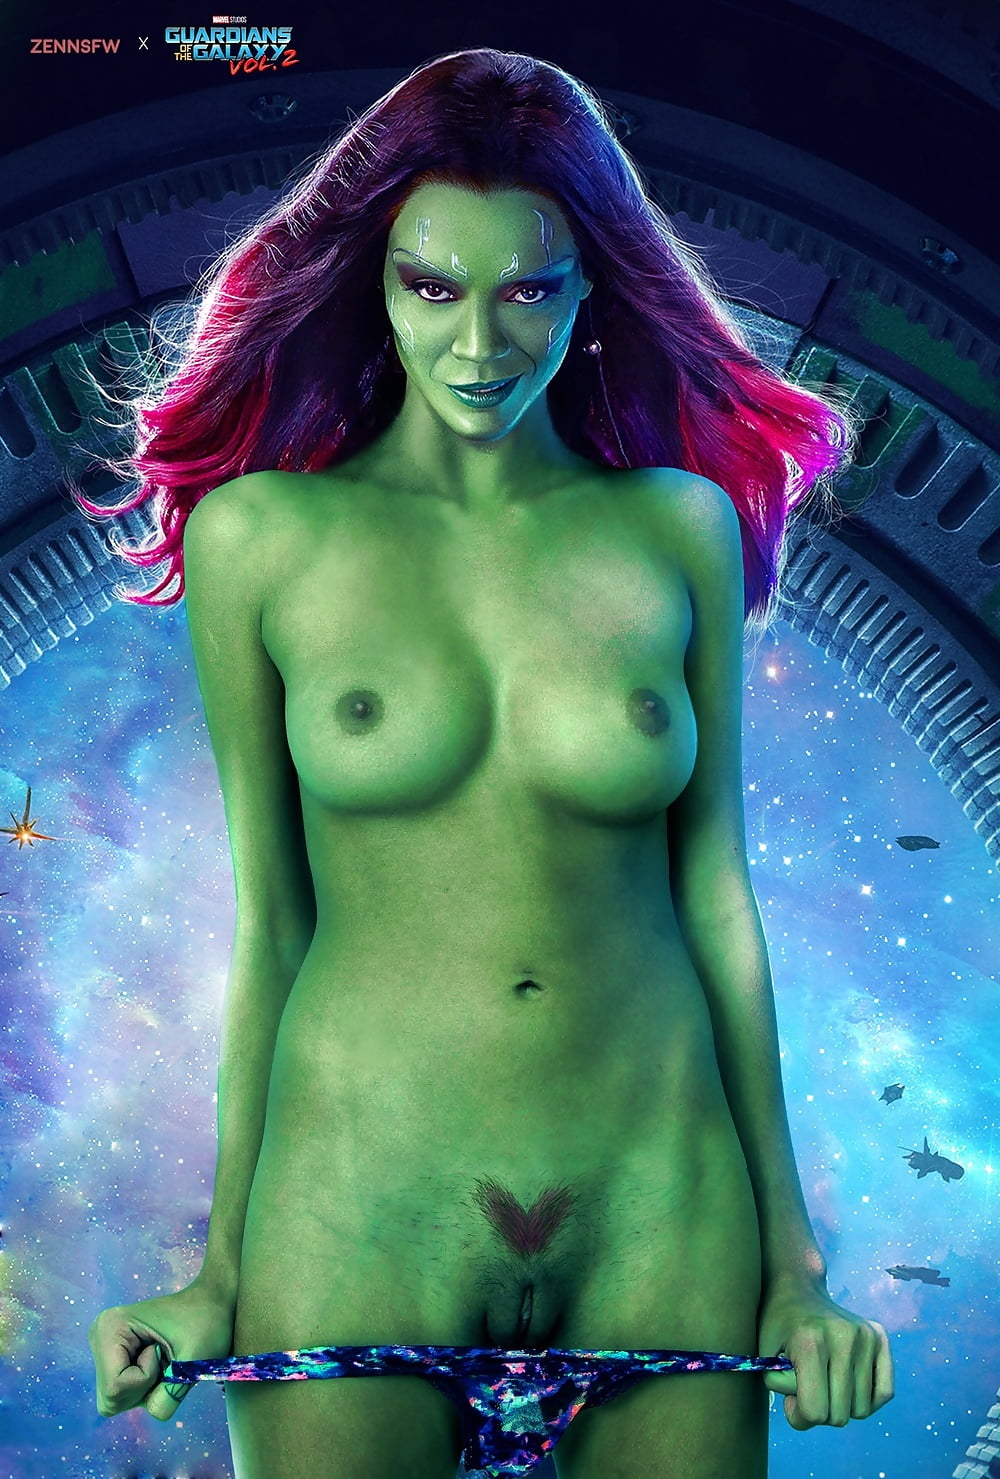 Marvel fake nude, nude bouncing boobies while fucking